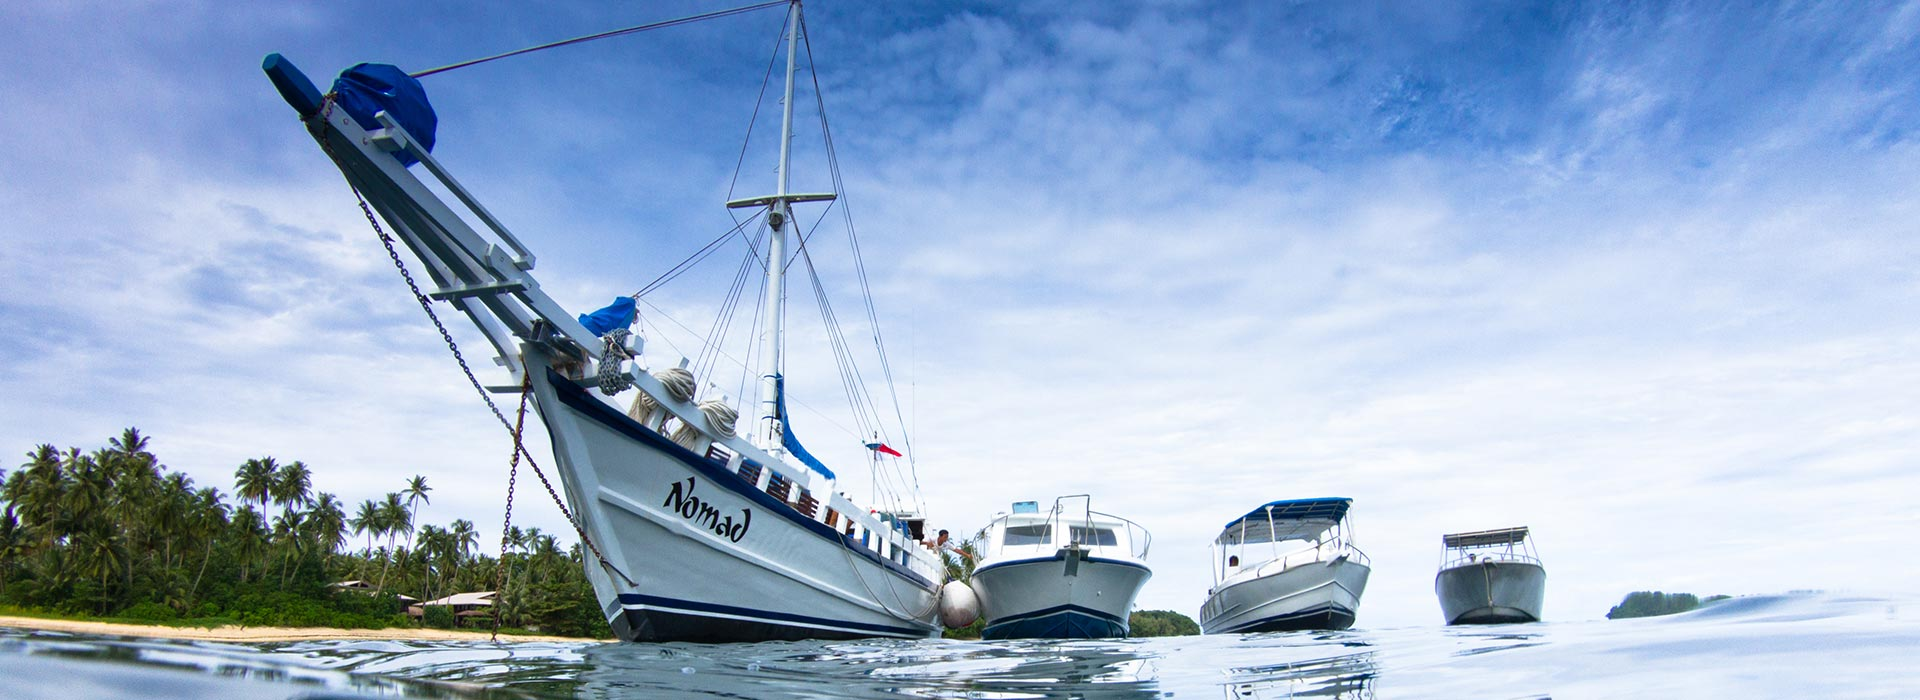 nomad-surf-charters-2